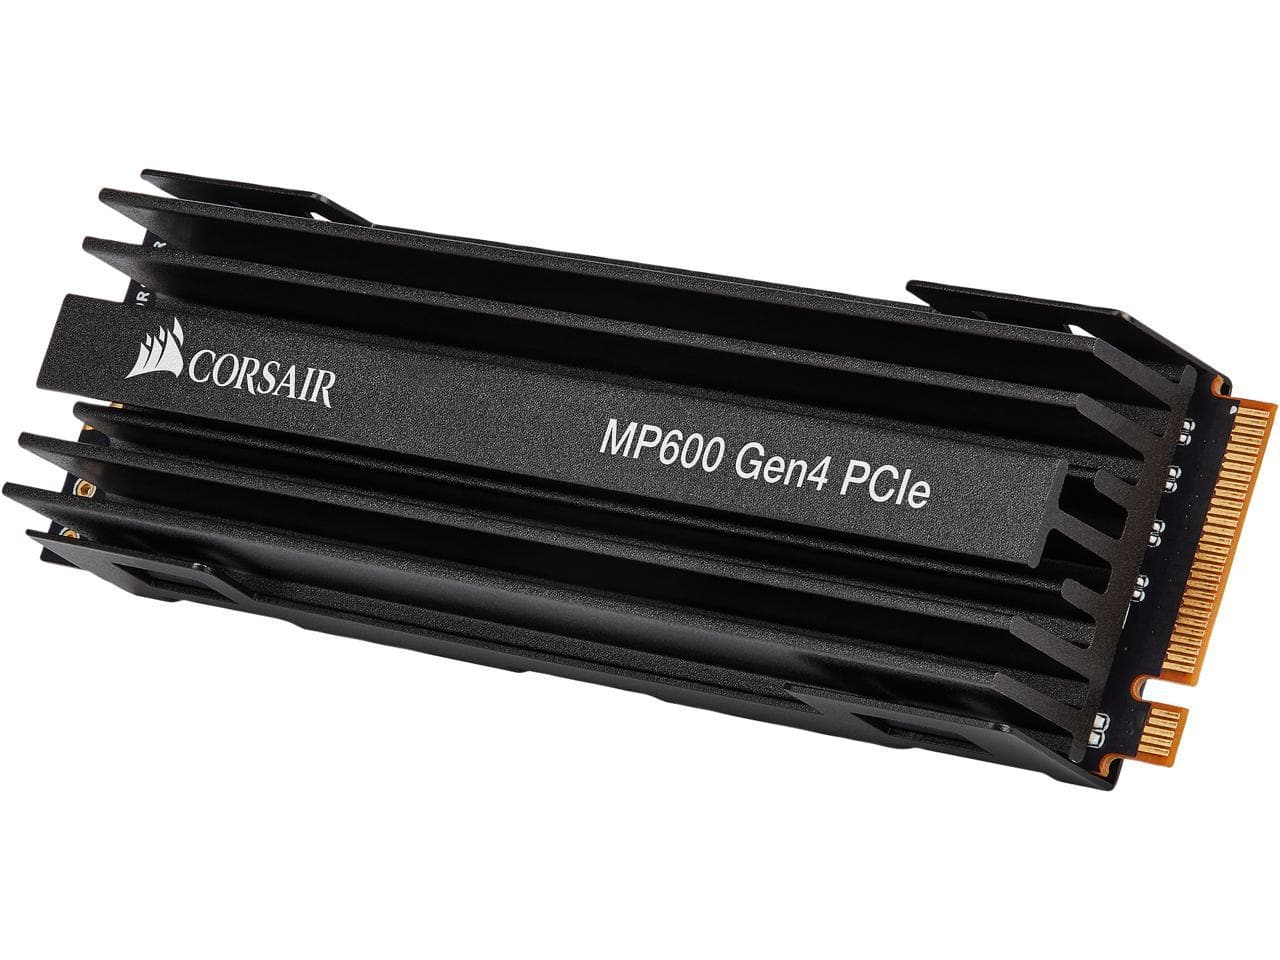 Corsair Force Series MP600 1TB Gen4 PCIe X4 NVMe M.2 SSD - $175.49 (Today only) at Newegg